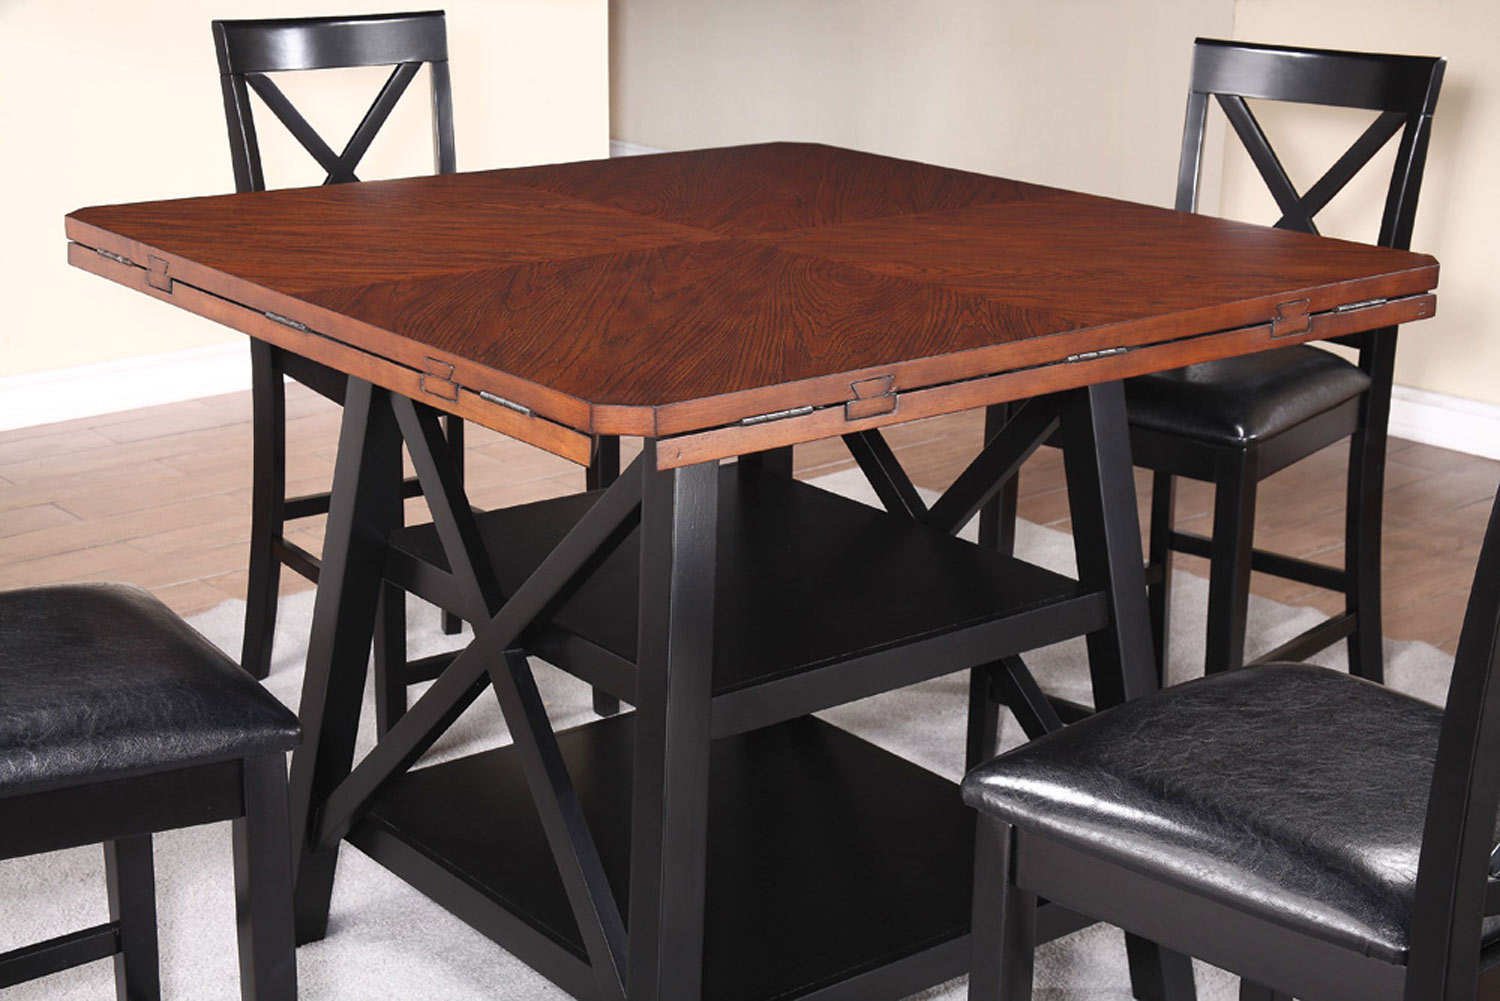 Coaster Austin Counter Height Dining Set Rustic Oak  : CO 104178 from www.homelement.com size 1500 x 1001 jpeg 188kB